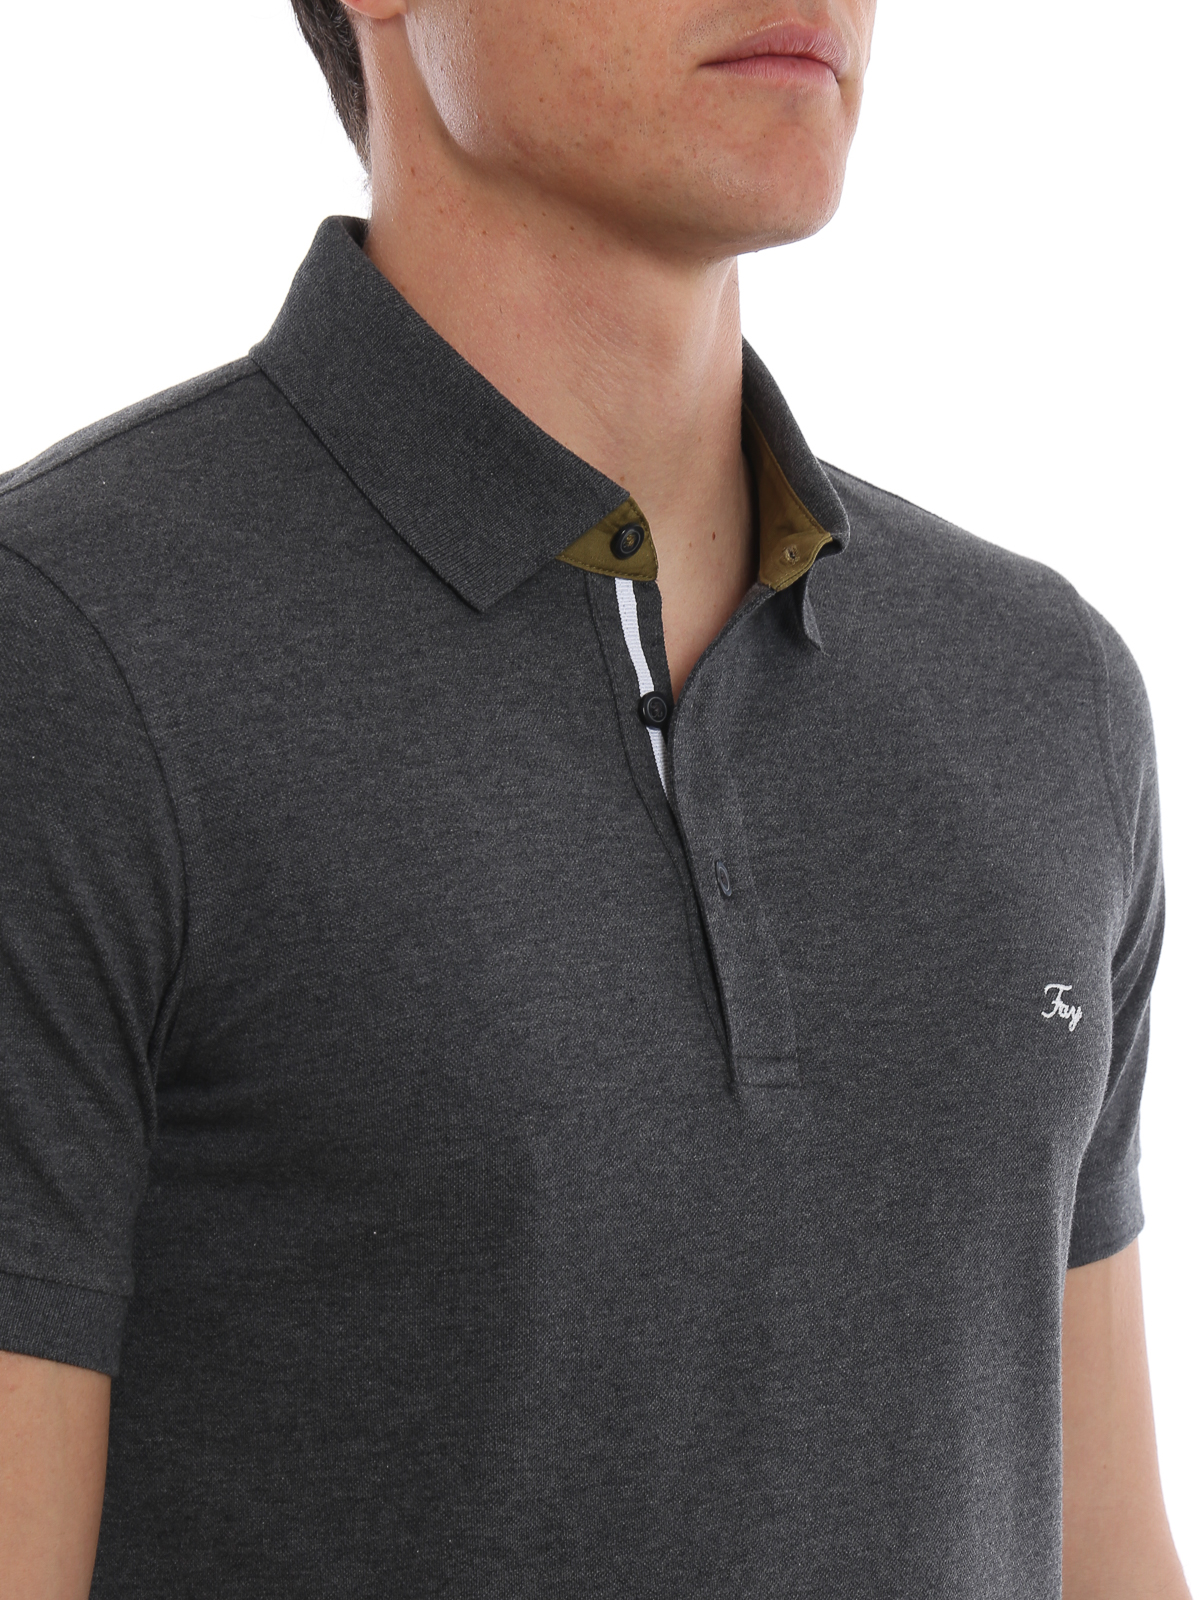 1e5434a7 Fay - Grey polo shirt with contrasting detail - polo shirts ...